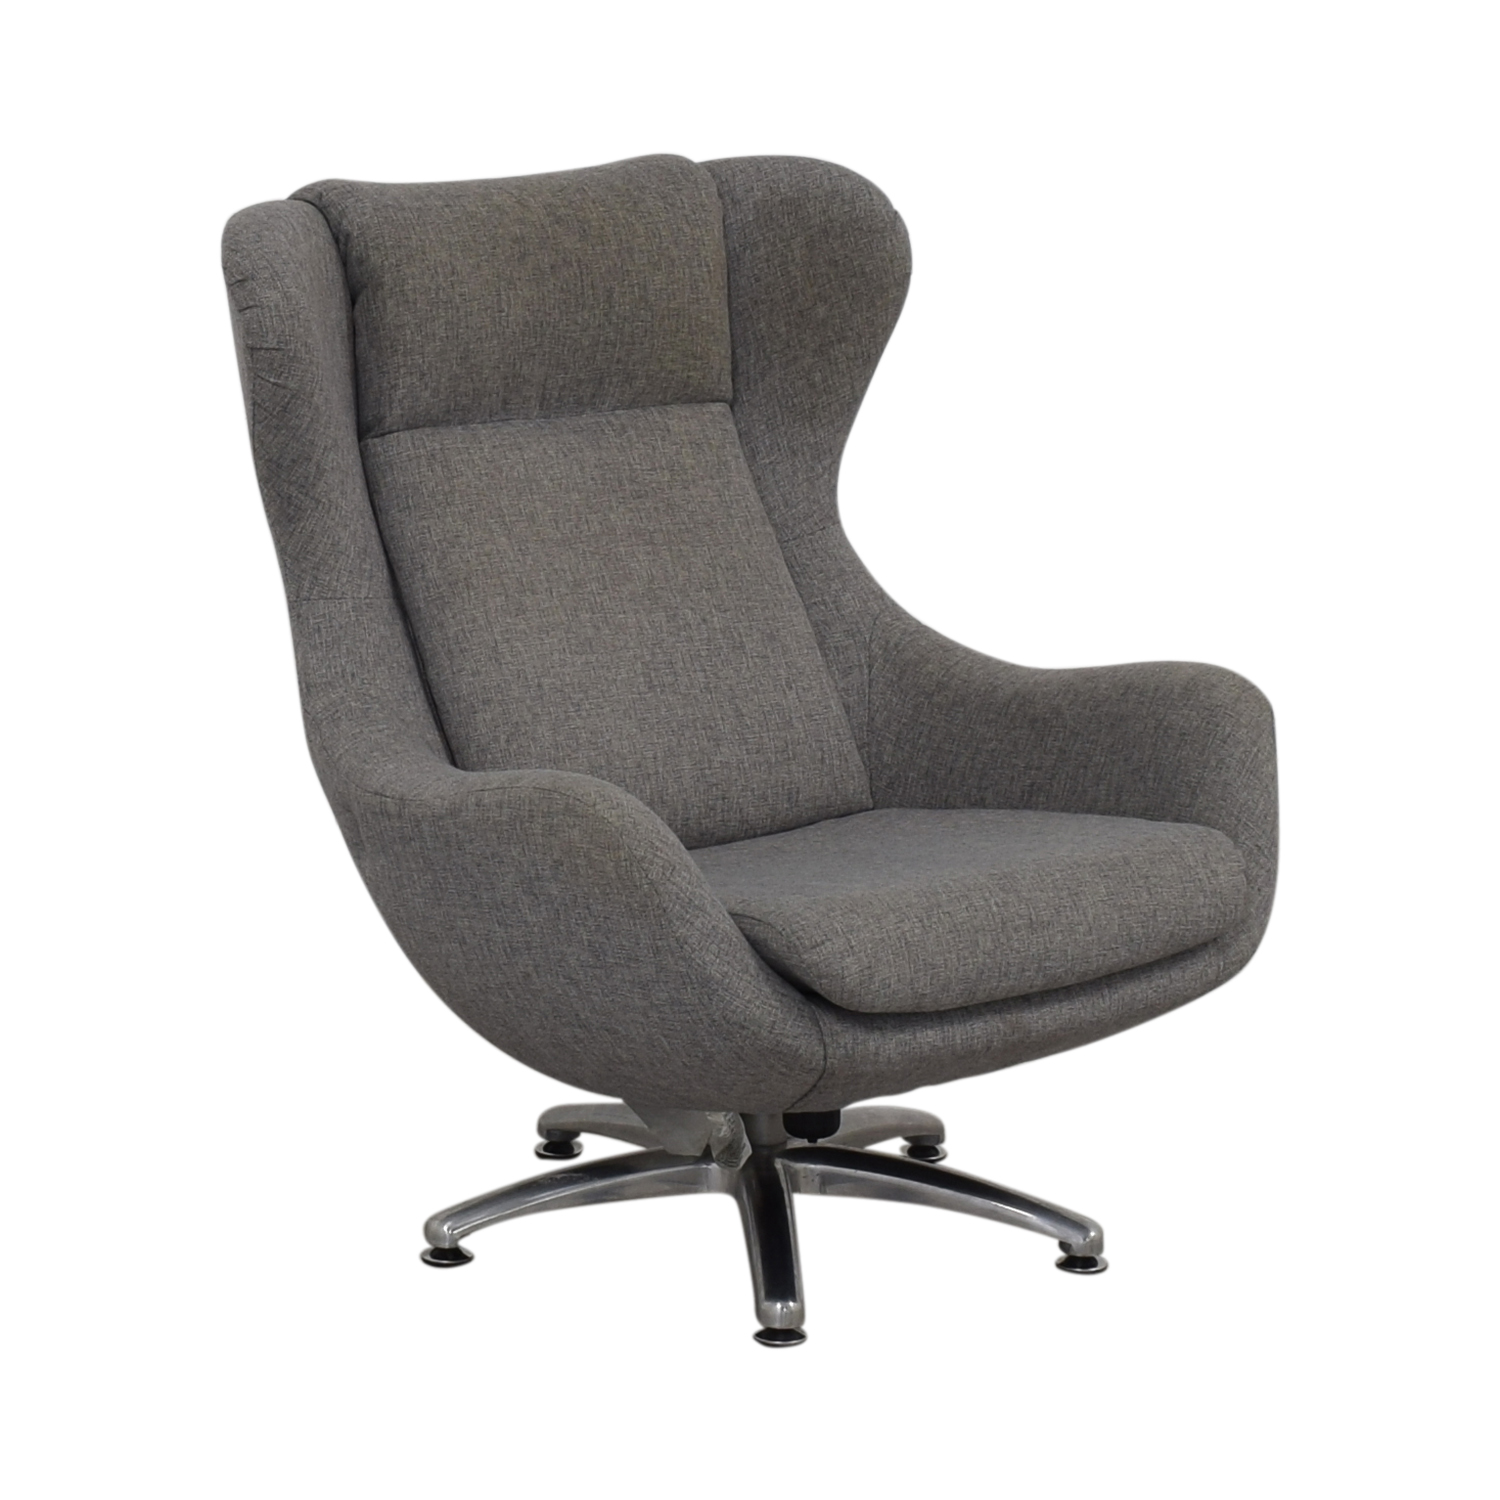 buy Urban Outfitters Wingback Chair Urban Outfitters Accent Chairs